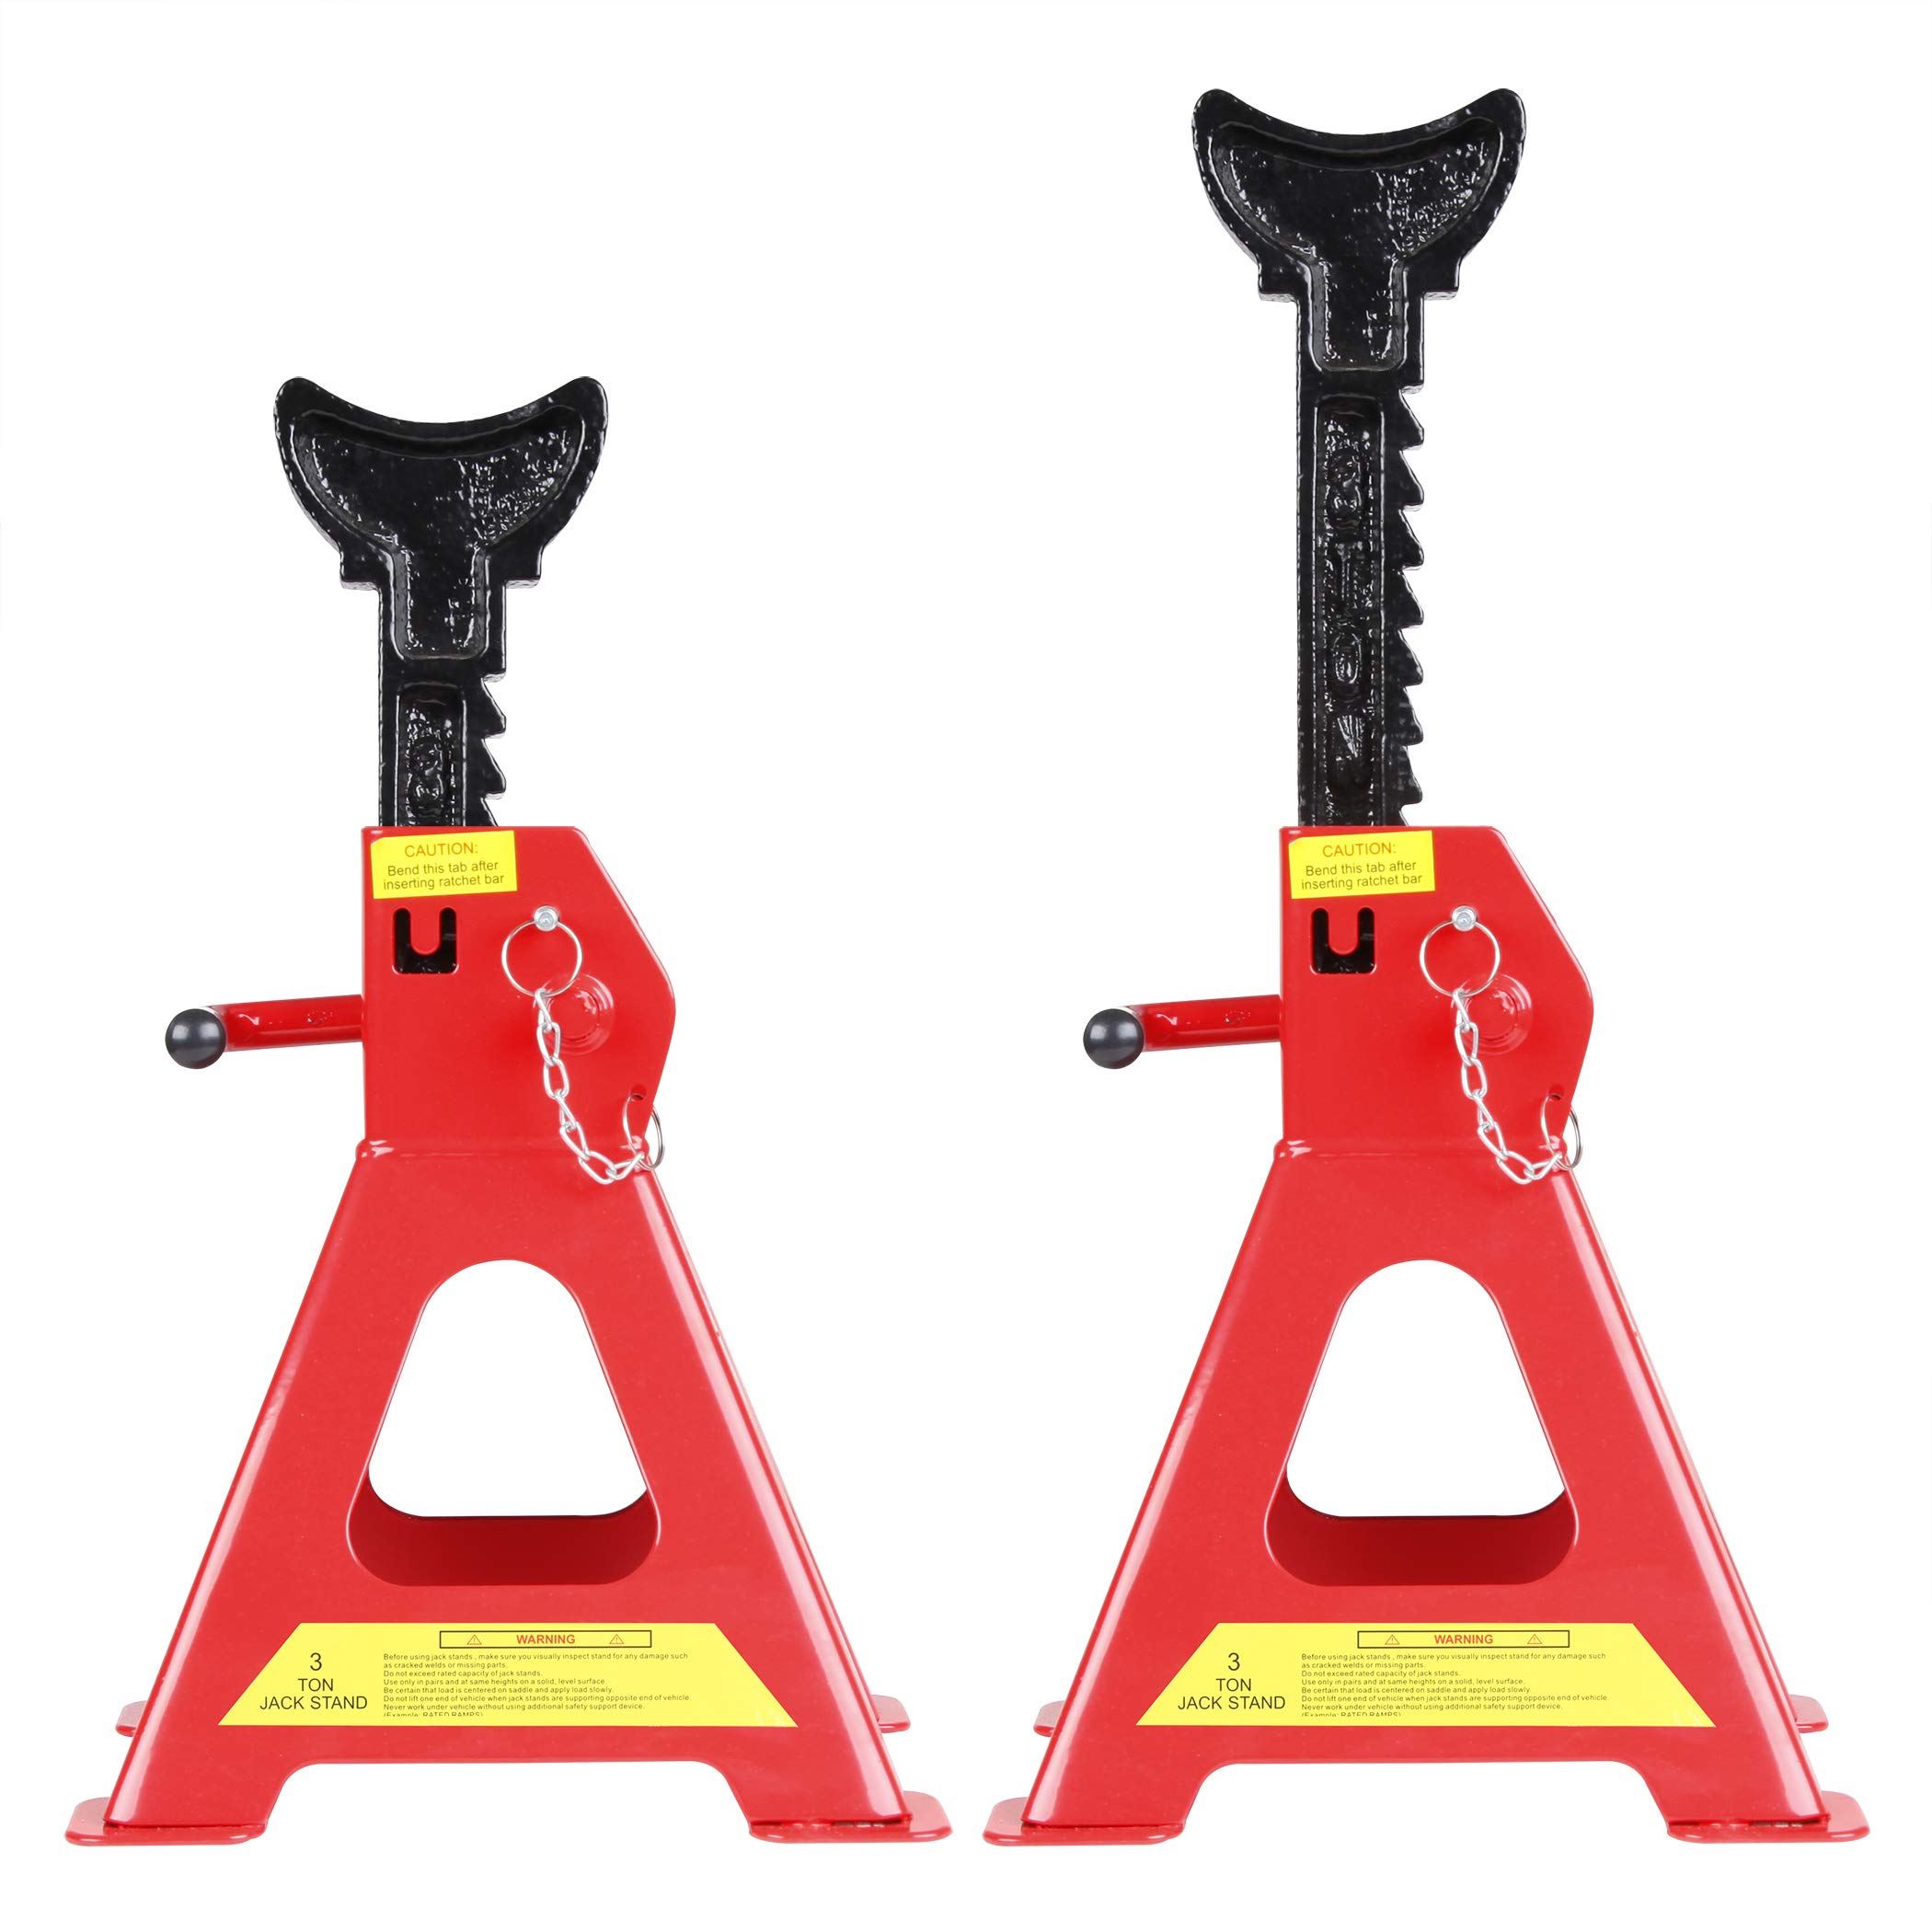 CARTMAN 3 Ton Double Locking Jack Stands with Safety Pin (Sold in Pairs) by CARTMAN